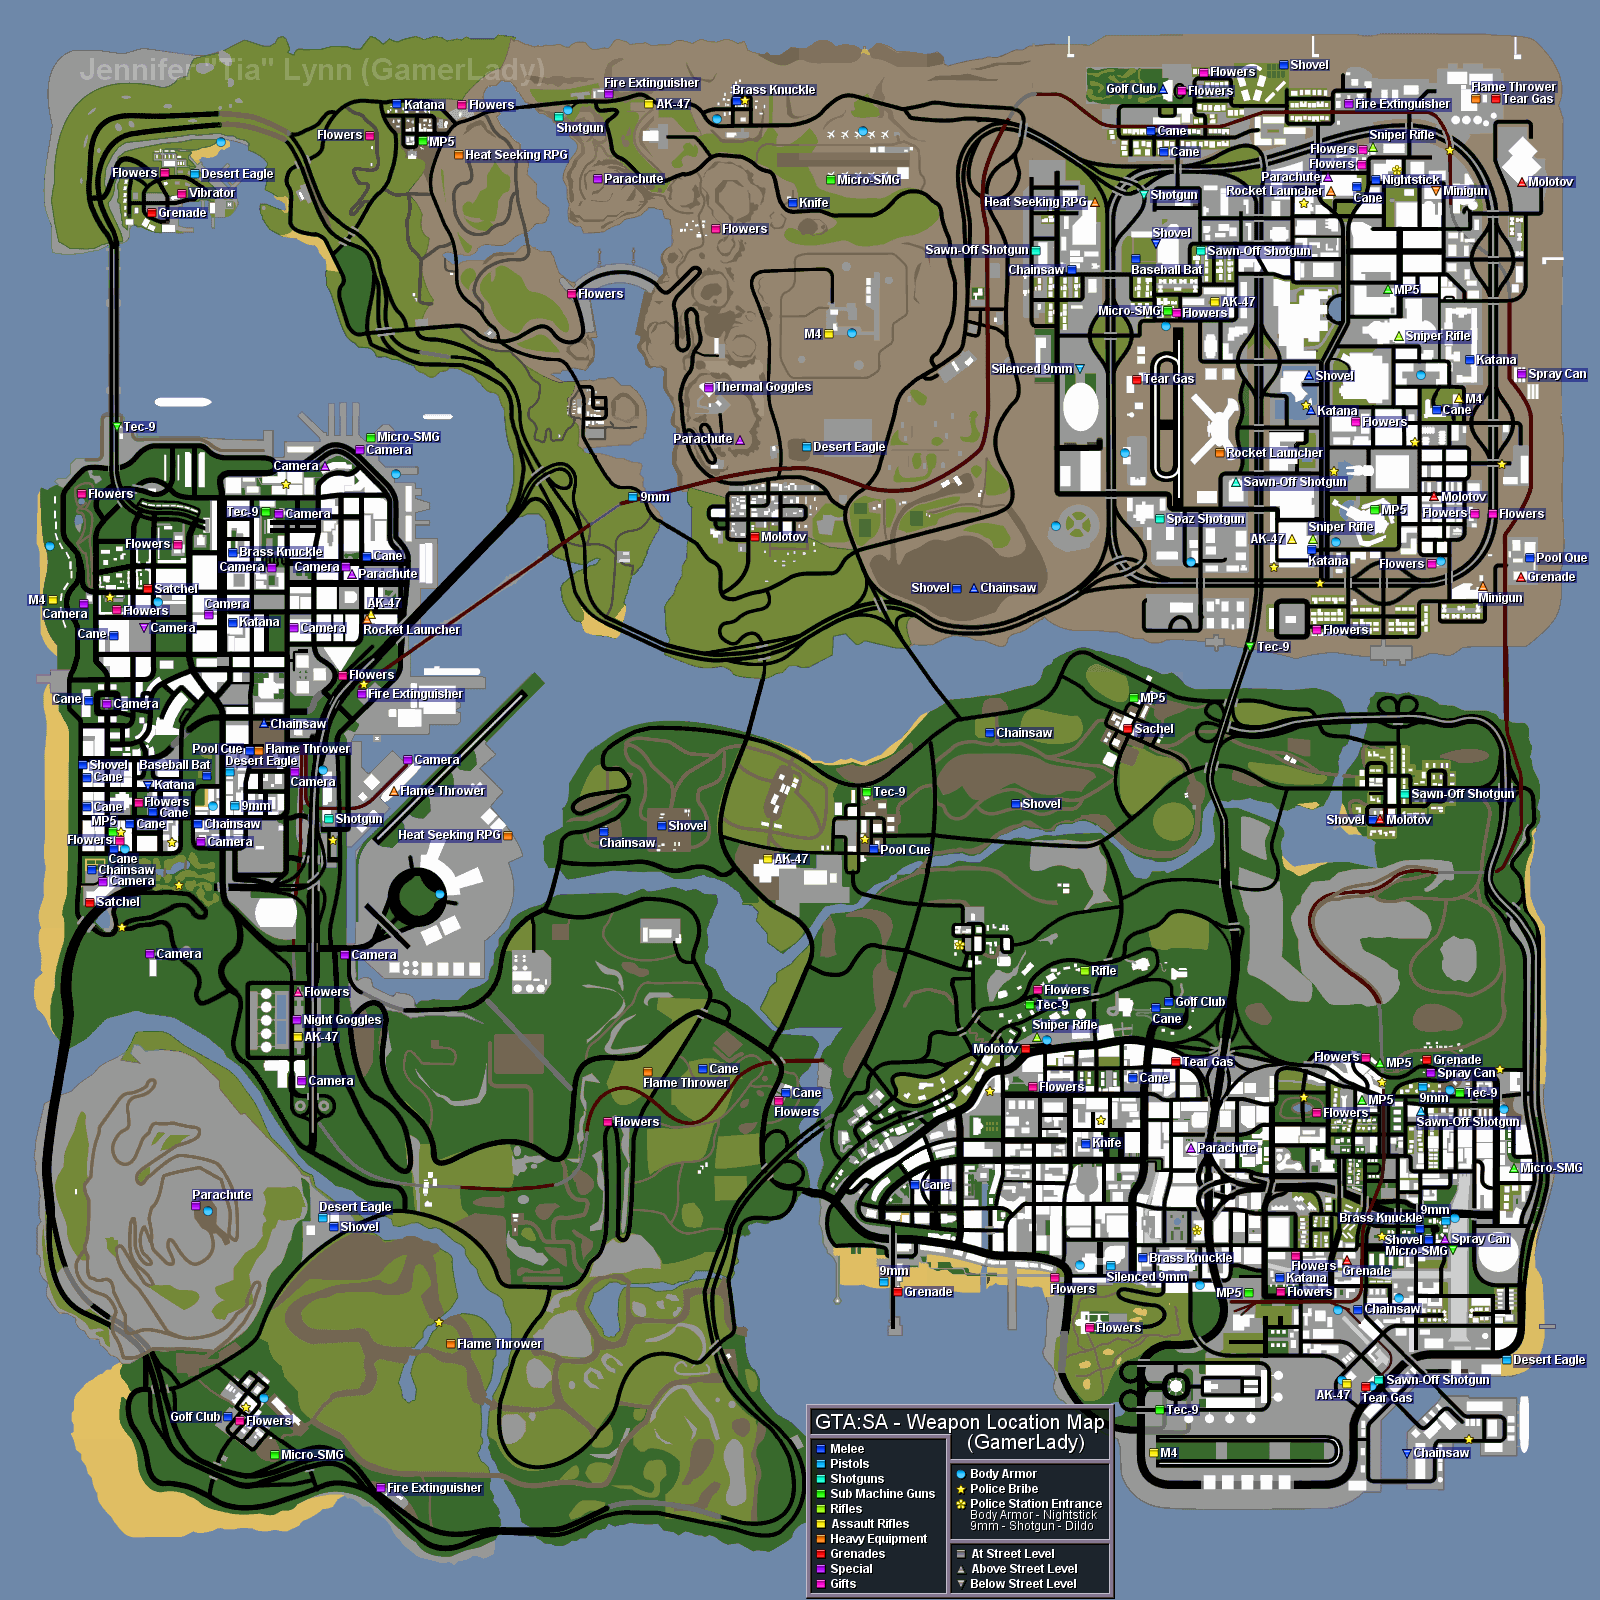 san andreas cheats ps3 with 7439 Karta Oruzhiya Broni Policeyskih Znachkov Podarkov on Gta 5 Cheats Ps3 Jetpack Nederlands further Screenshots further Index as well Check Gta V Style San Andreas Map likewise Mods.